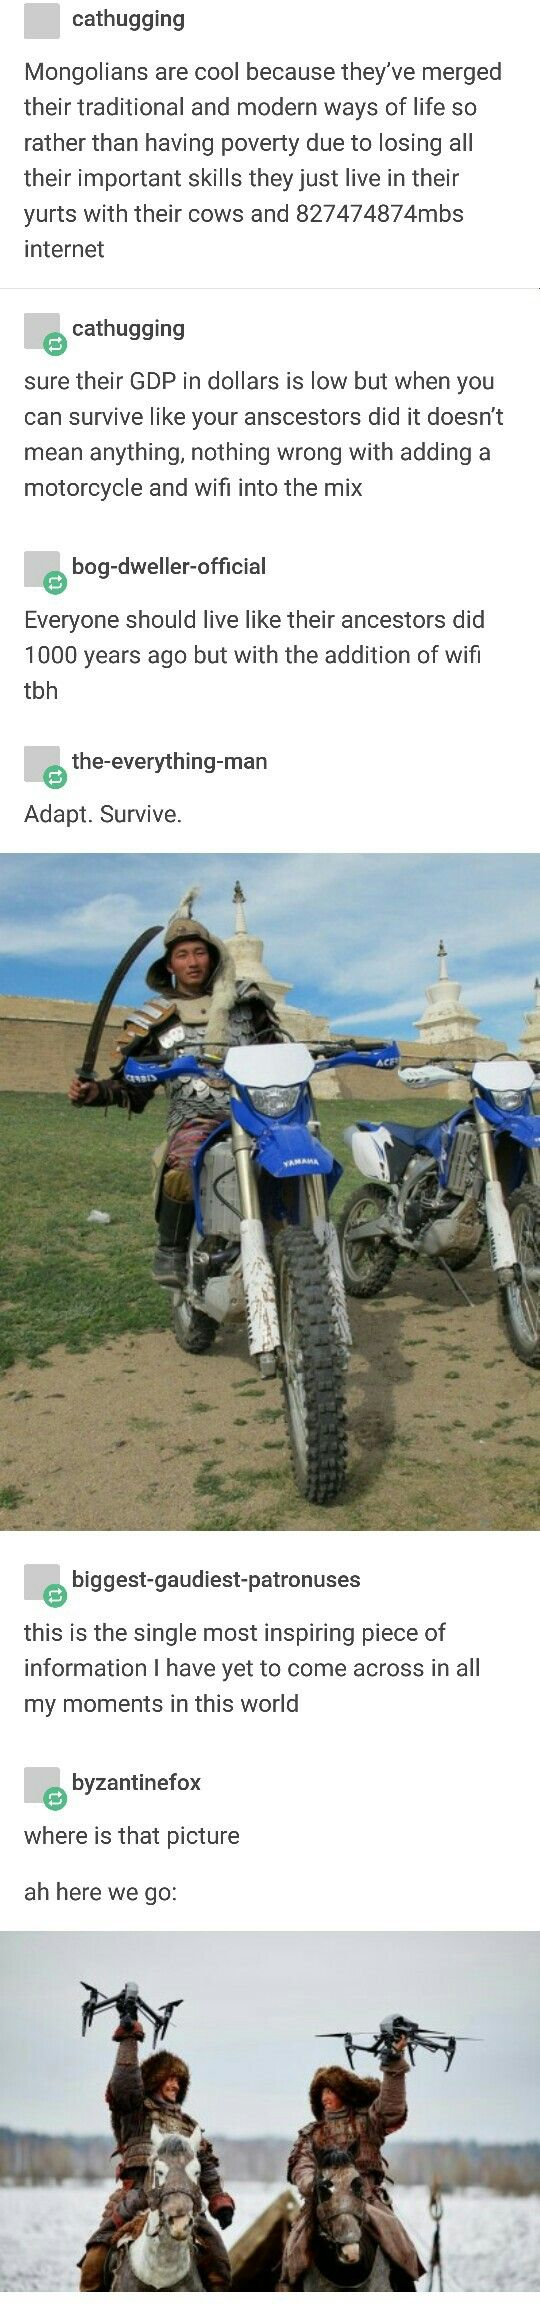 Mongolians, merging tradition and technology